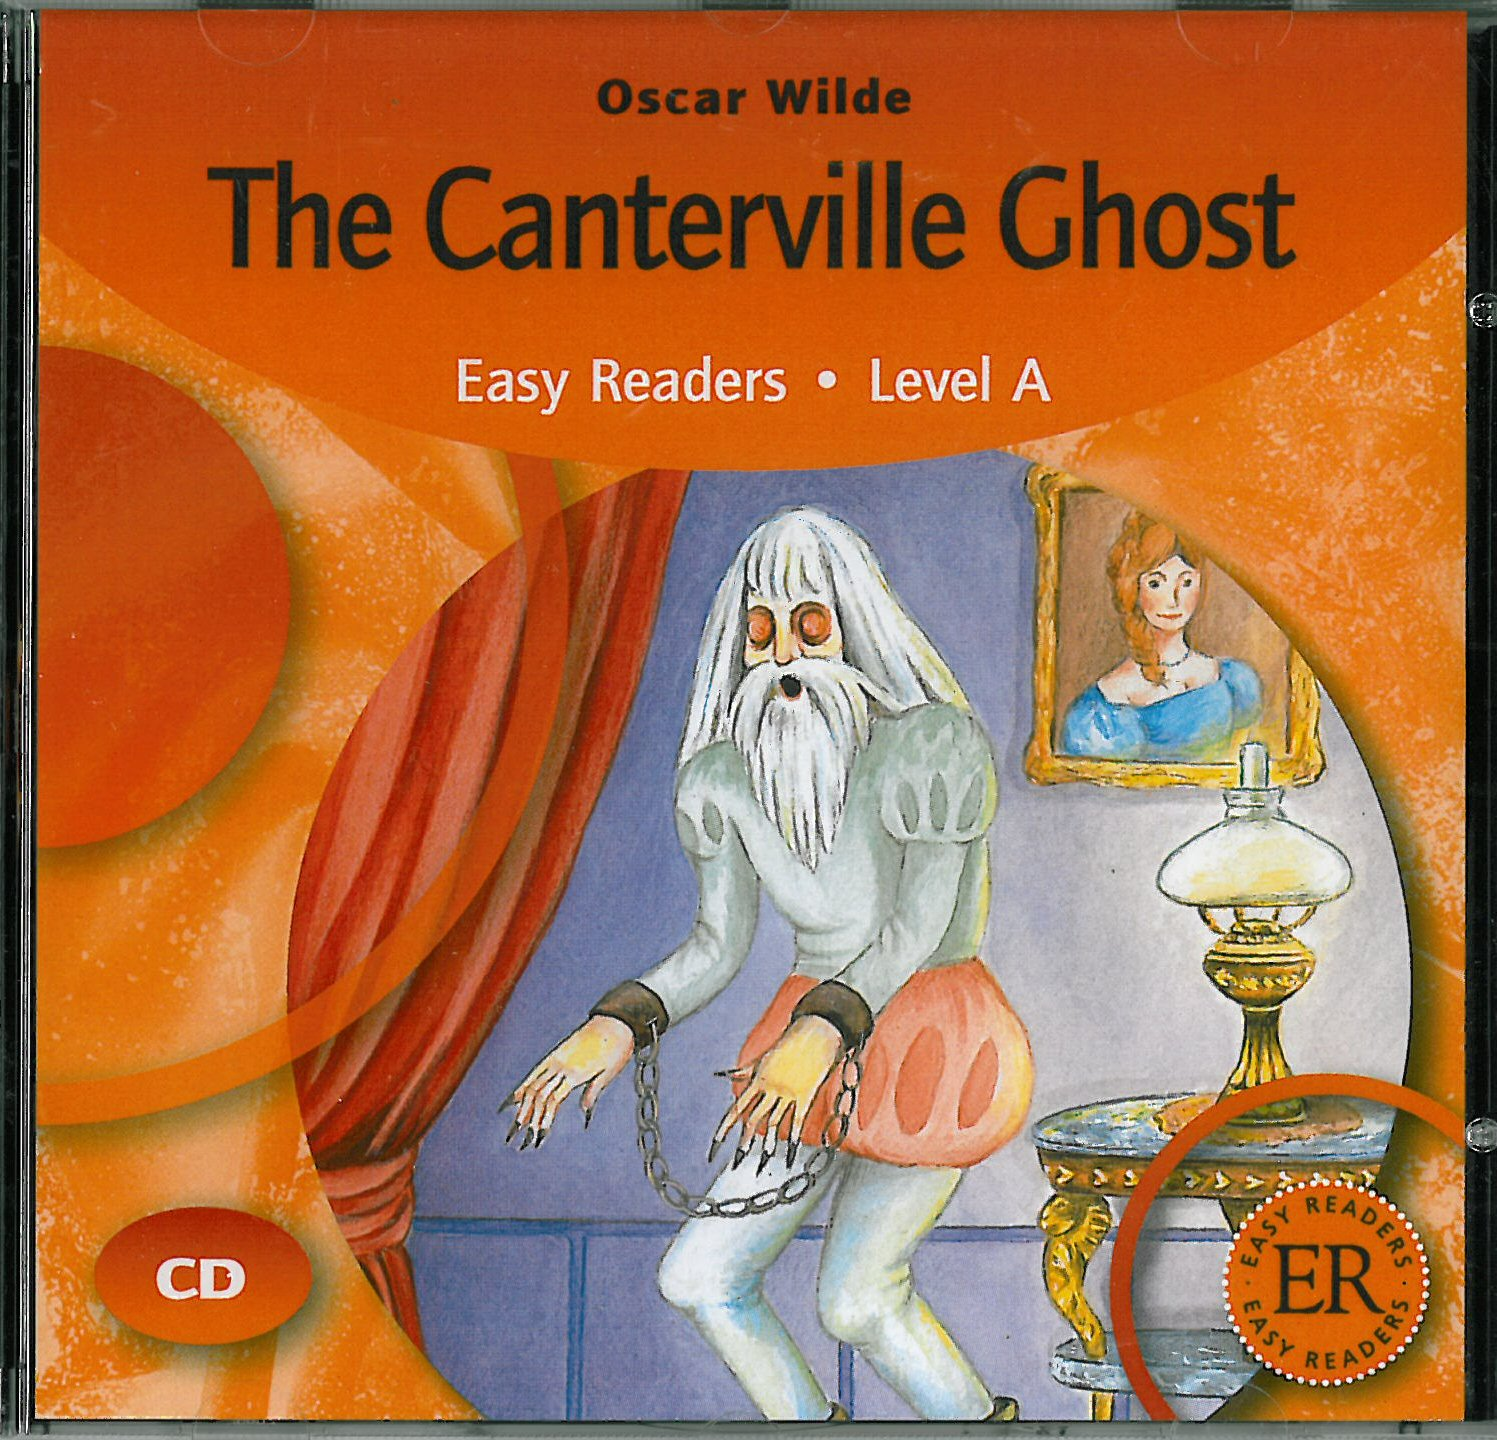 Vonsild School Blog Denmark: The Canterville Ghost - Oscar Wilde